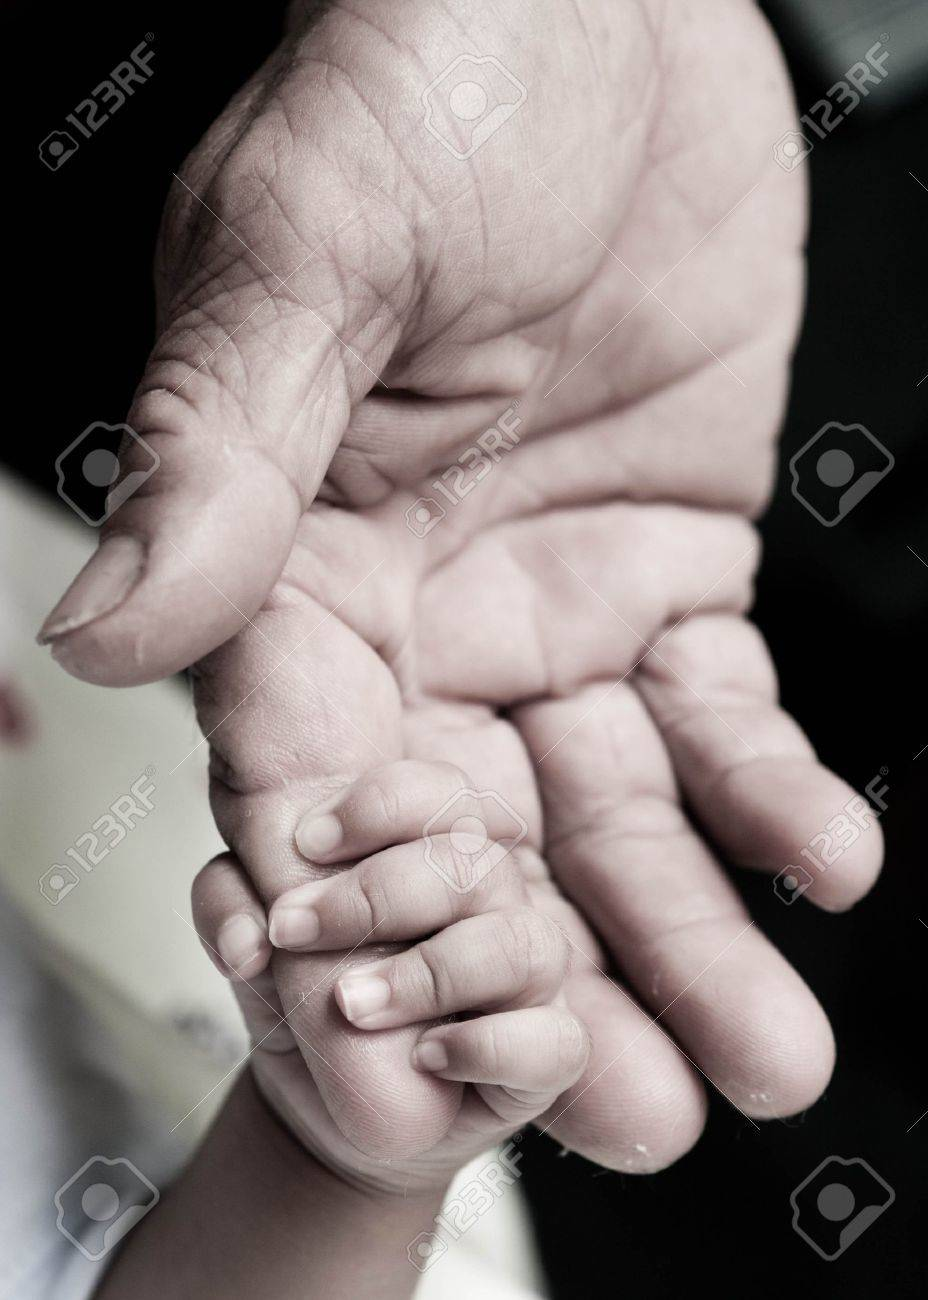 baby hand holding Rough finger Stock Photo - 11368262